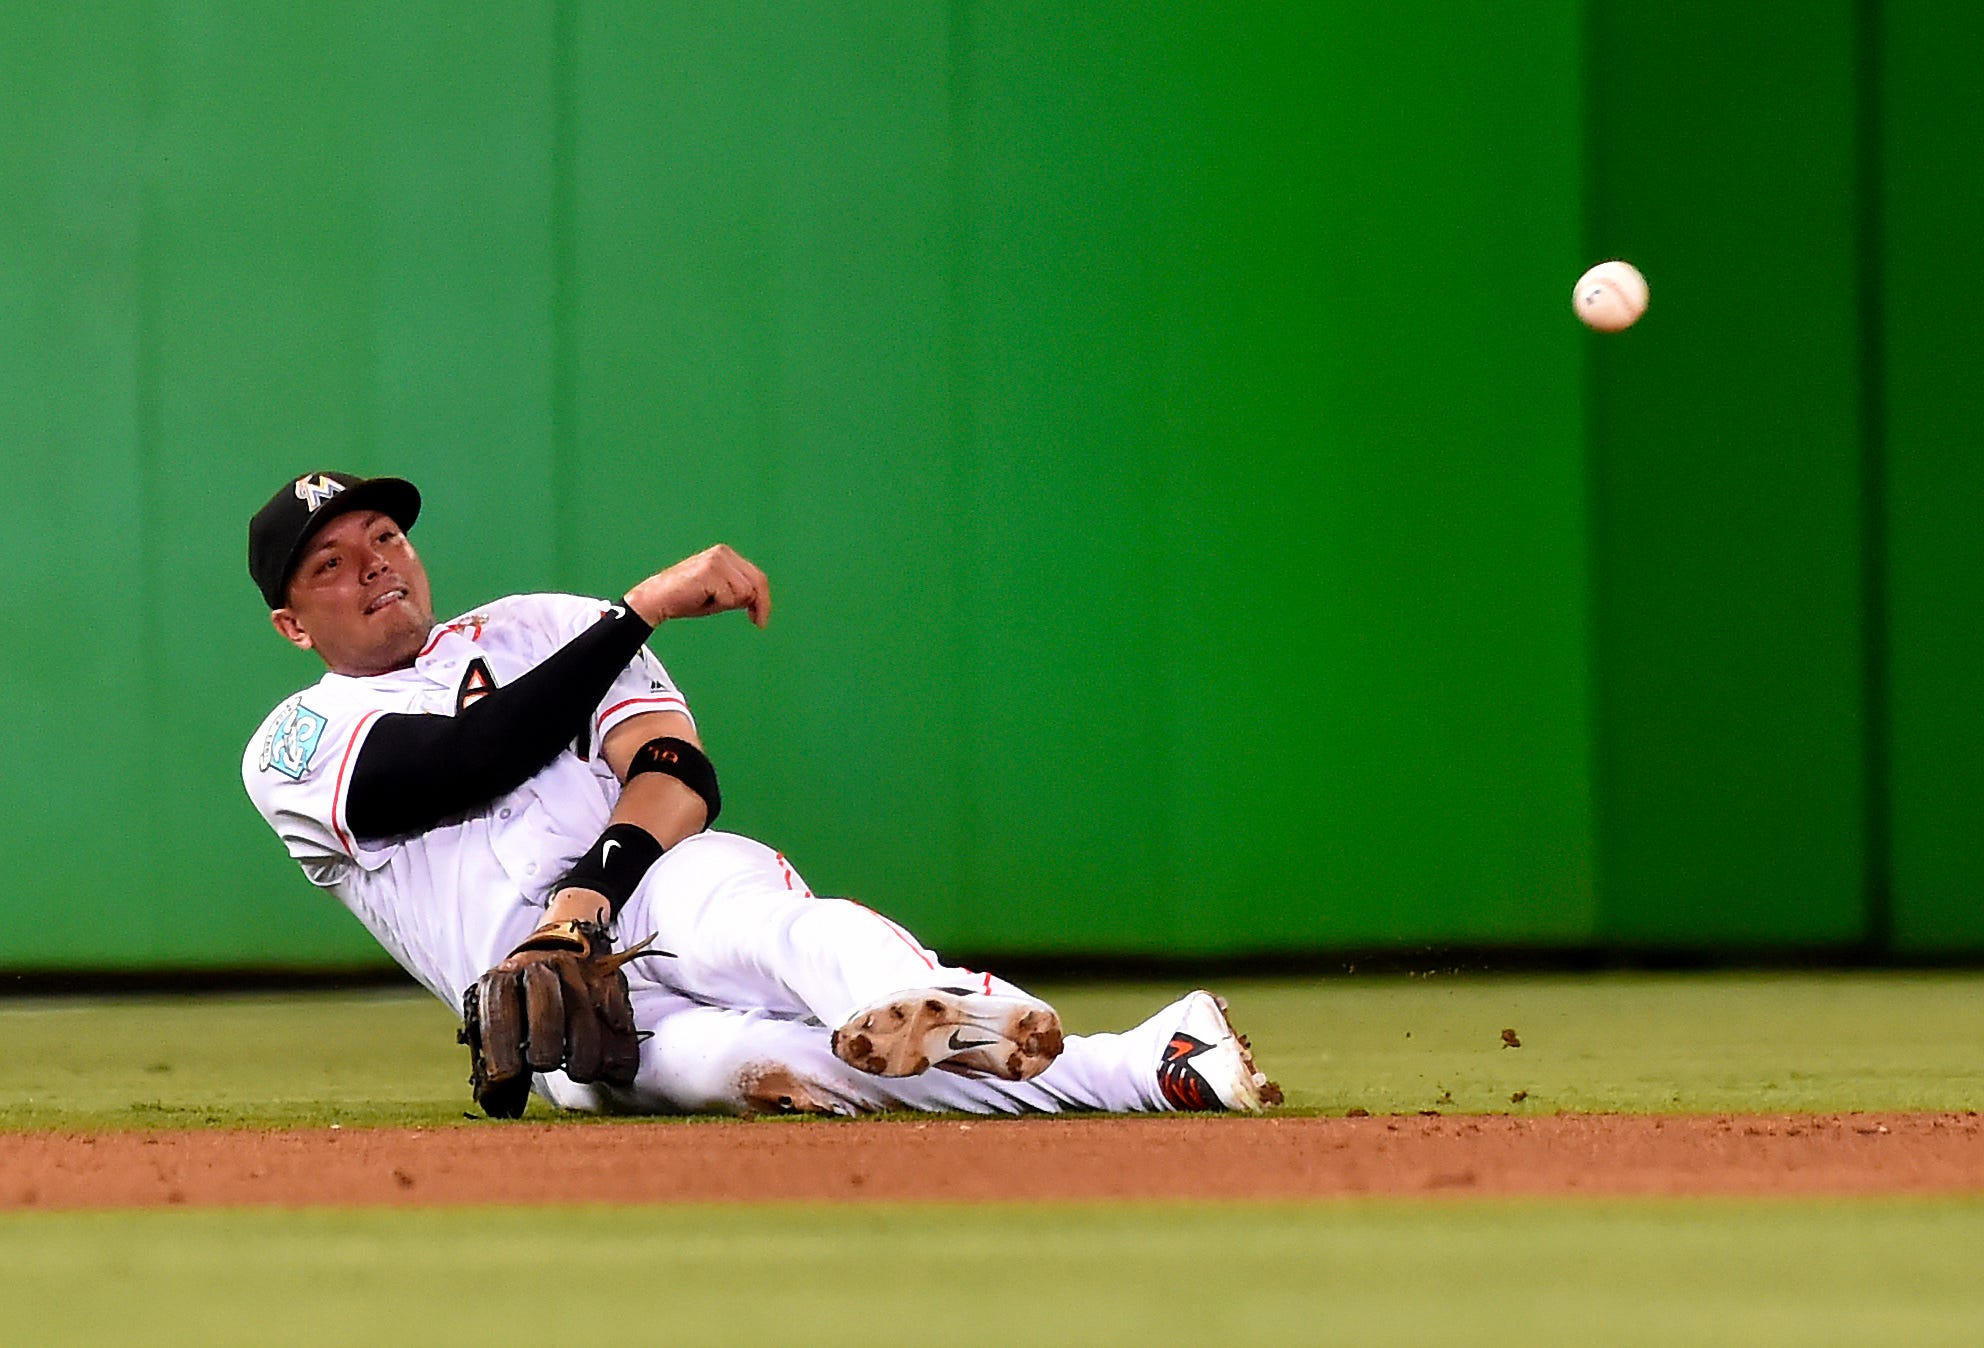 Miami Marlins shortstop Miguel Rojas attempts to throw to second base in the fourth inning against the San Francisco Giants at Marlins Park in Miami.